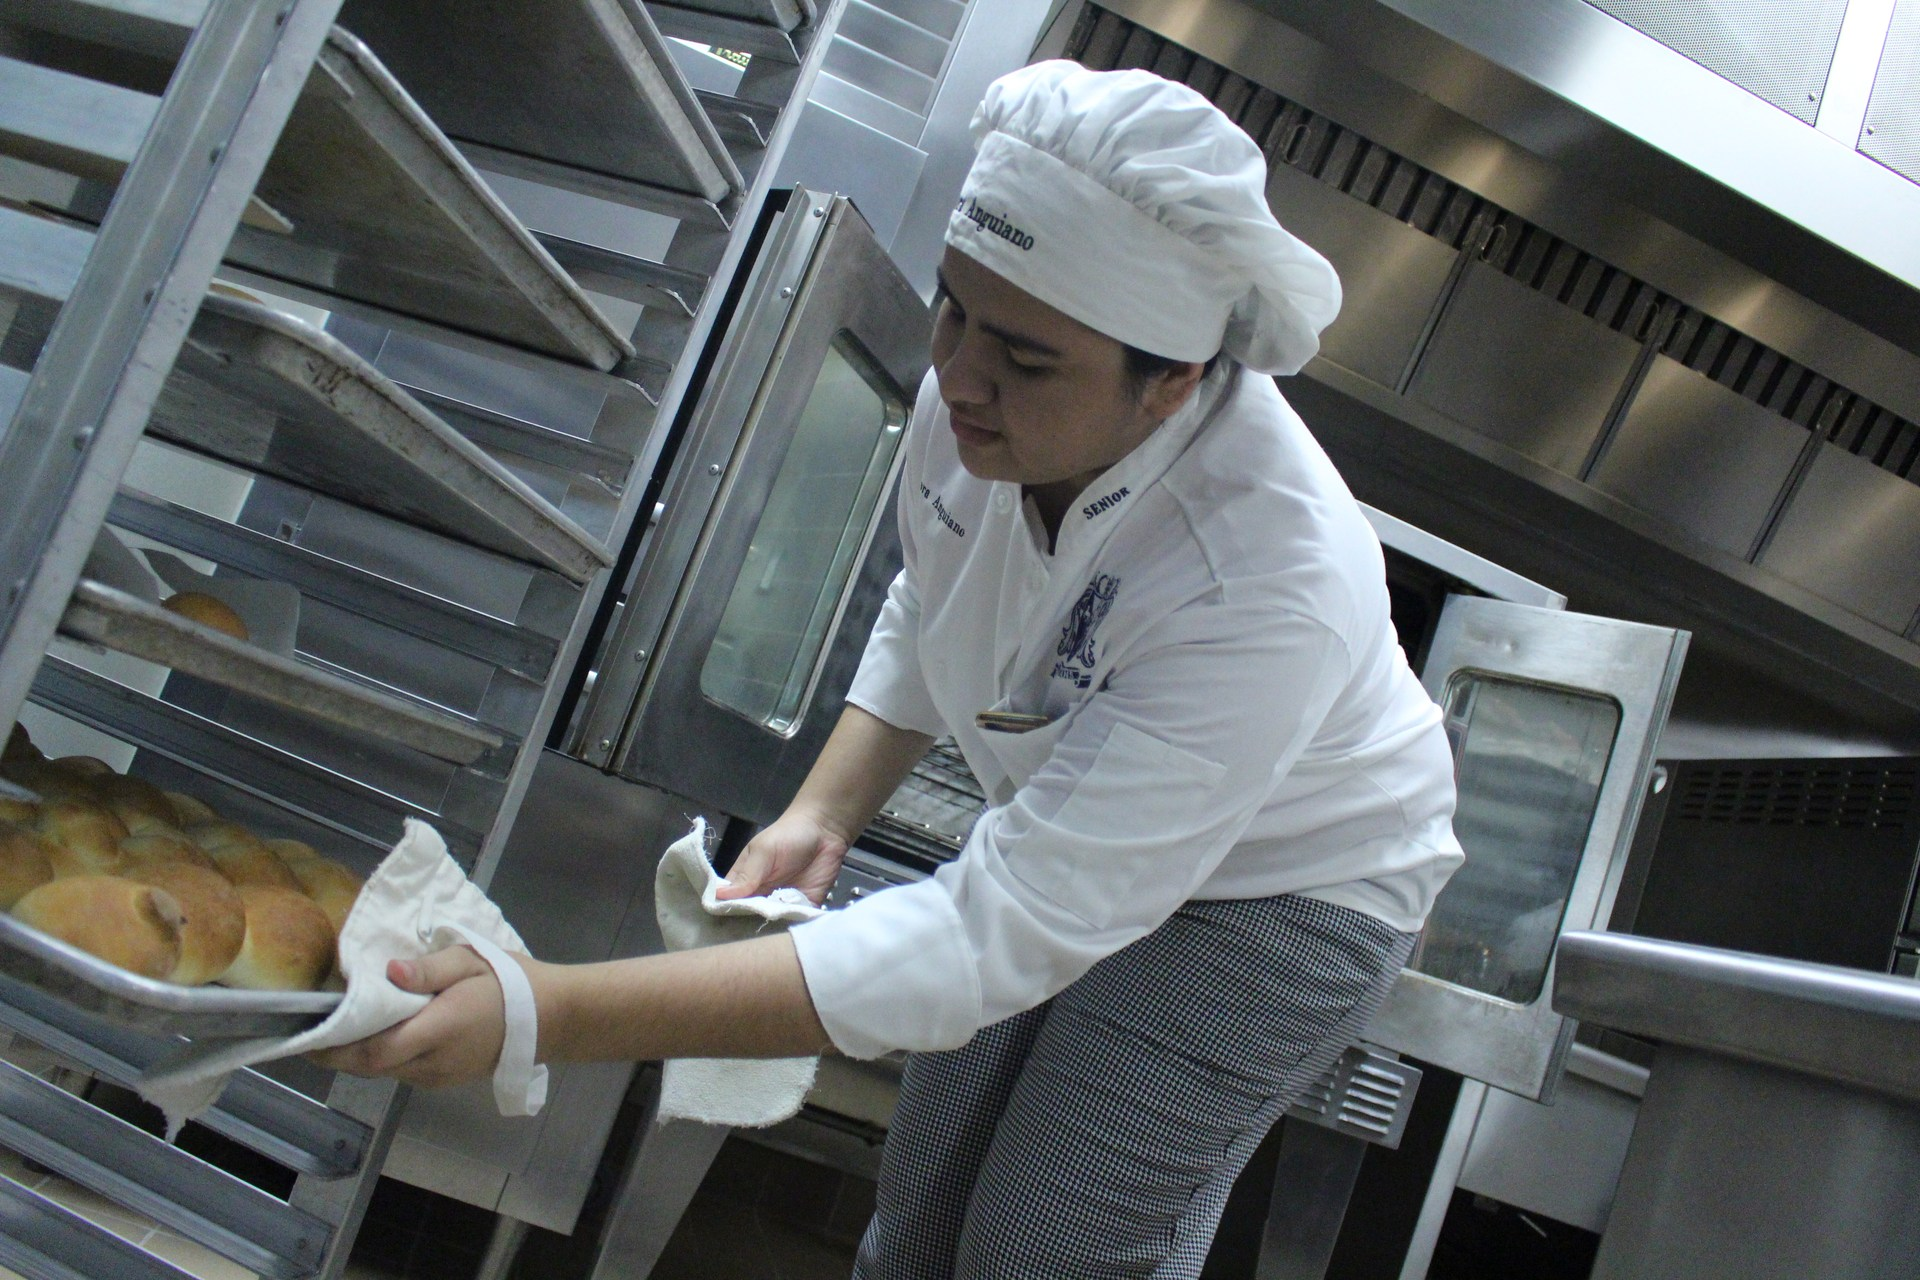 Student removing hot roll pan from the rack